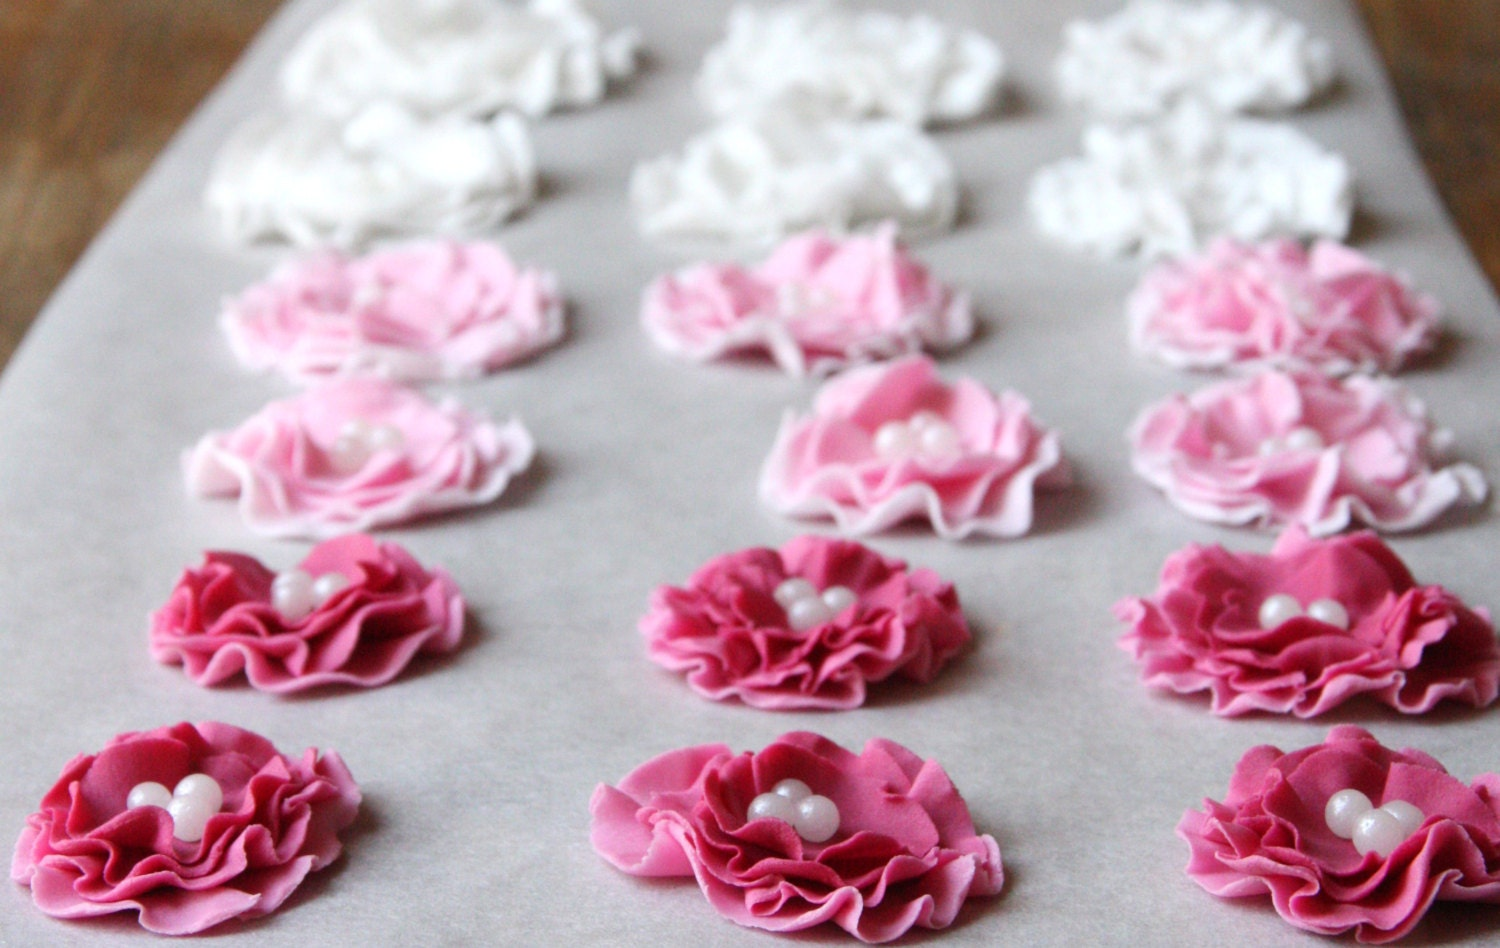 Edible Flowers For Cake Decorating : Flower cake or cupcake topper edible wedding cake decoration